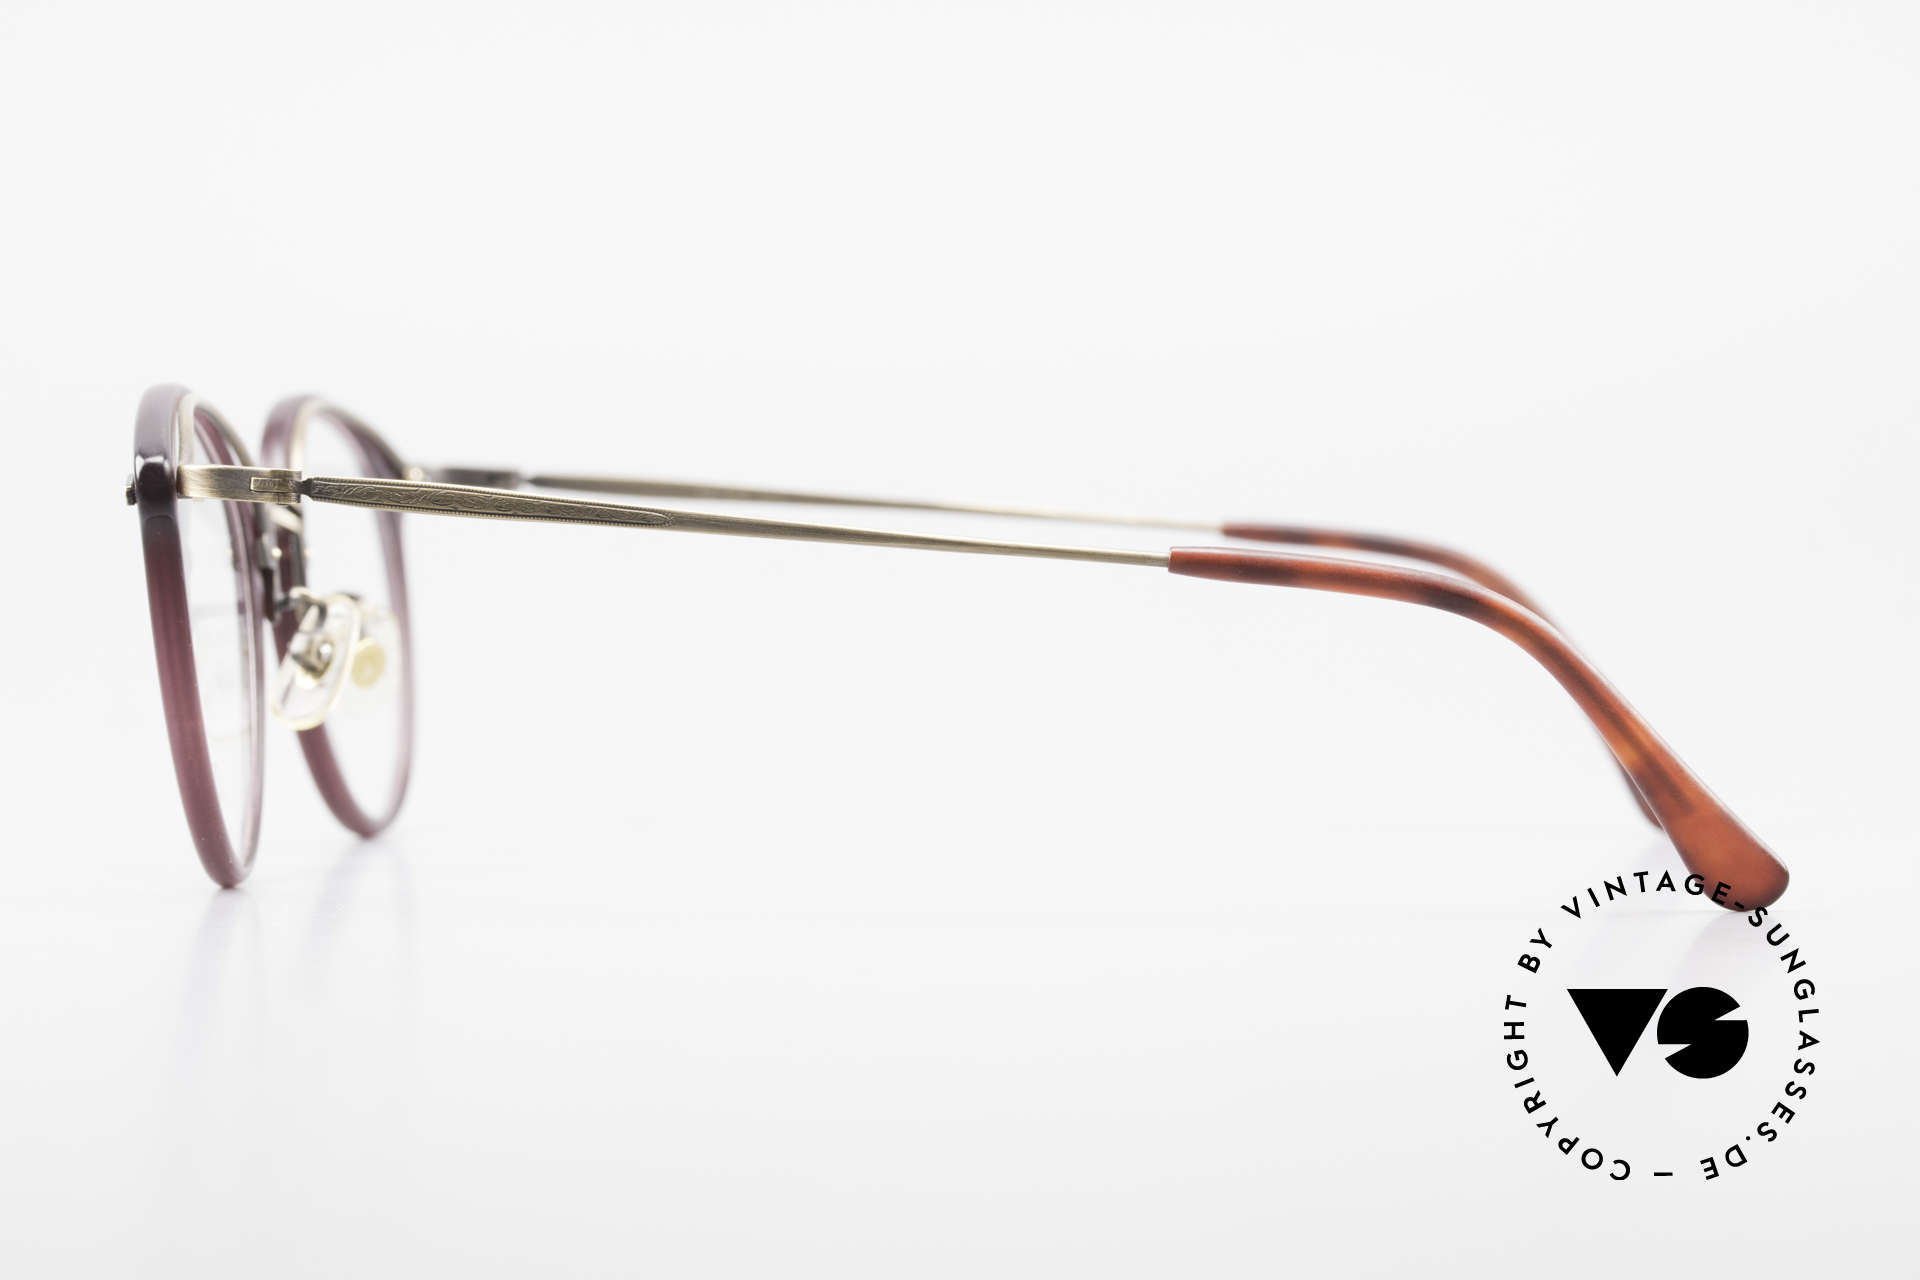 Matsuda 2836 Panto Style 90's Eyeglass-Frame, demo lenses can be easily replaced with prescriptions, Made for Men and Women